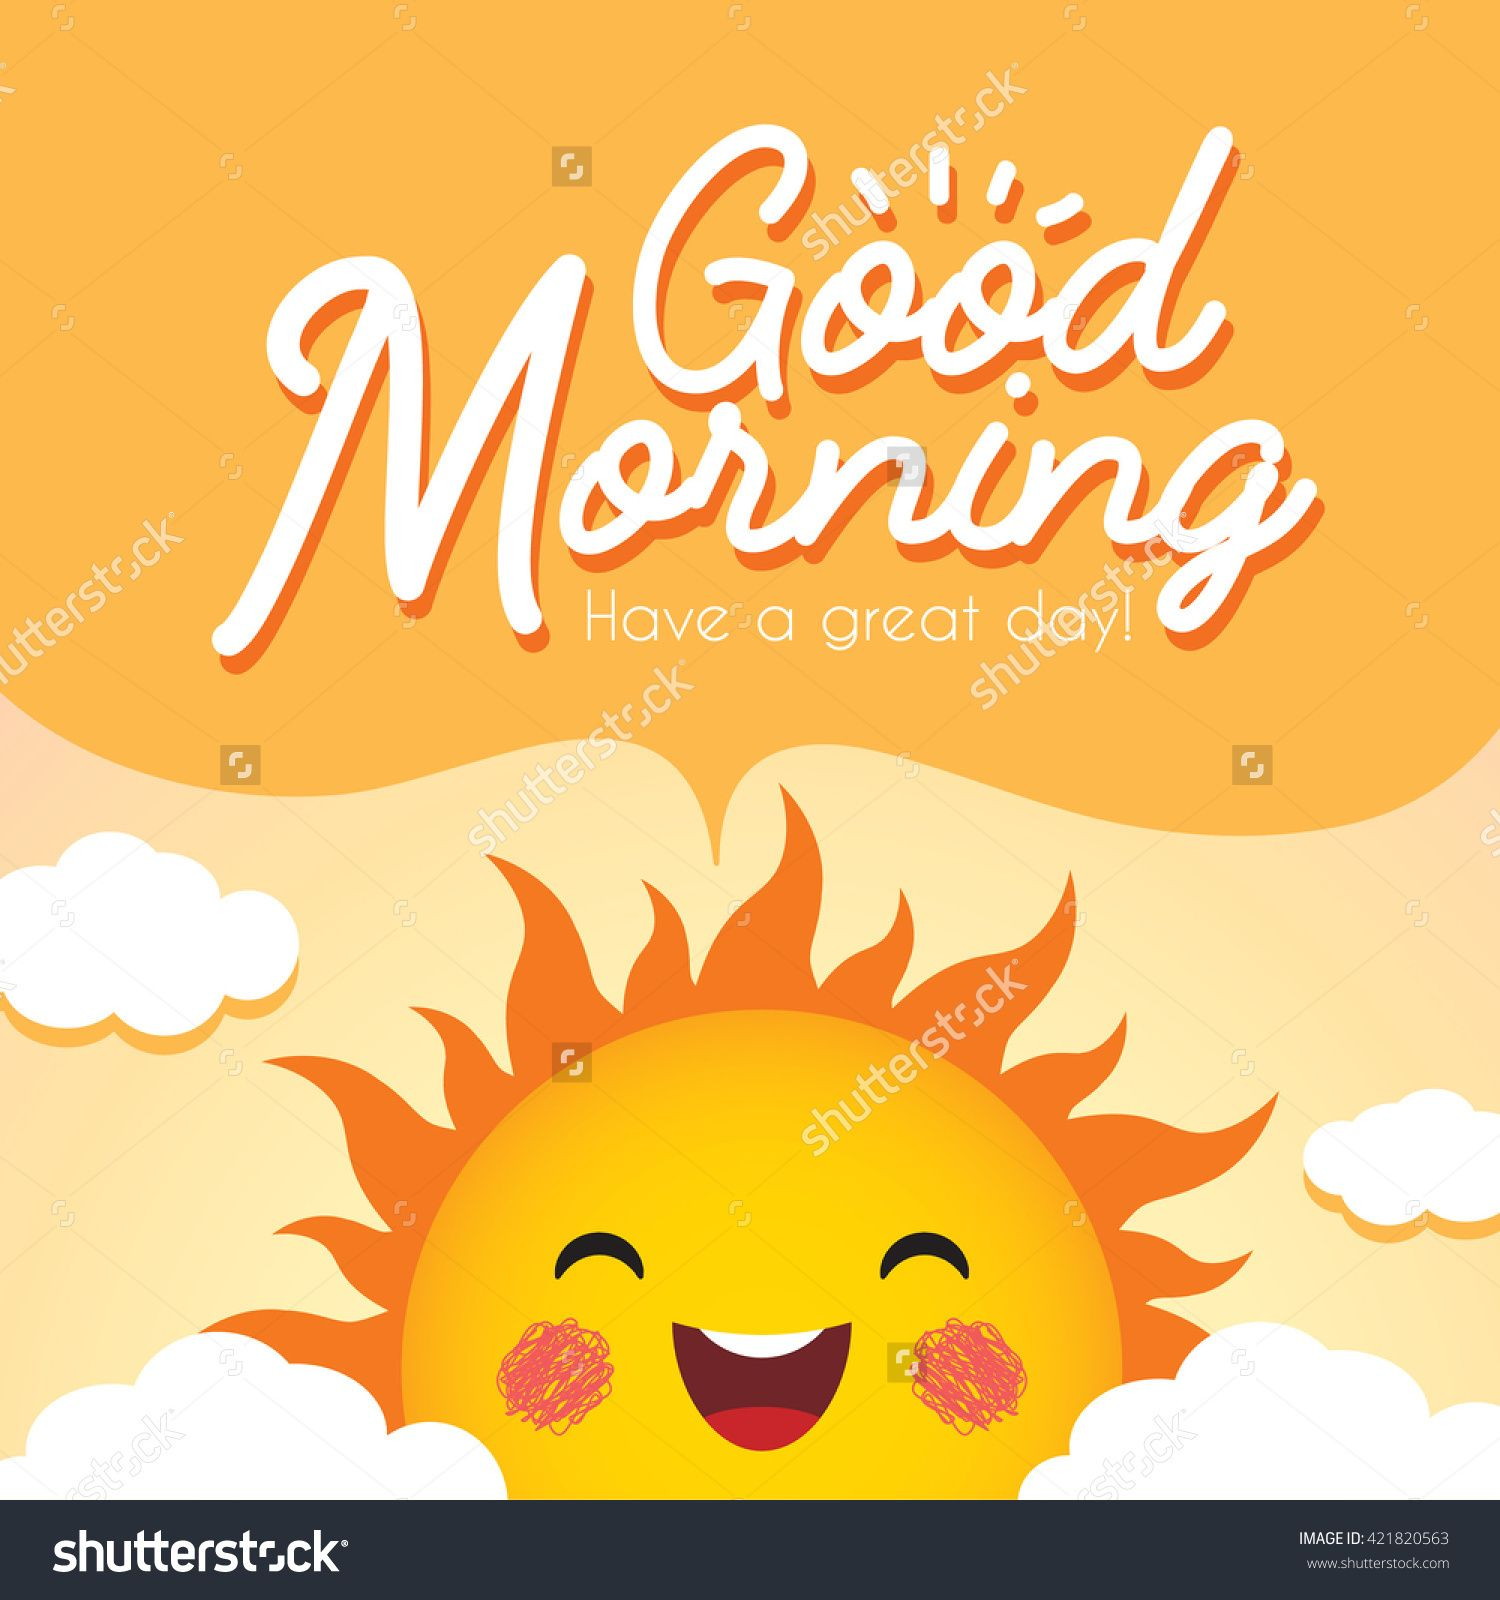 Good Morning Morning Vector Illustration With Cute Smiling Cartoon